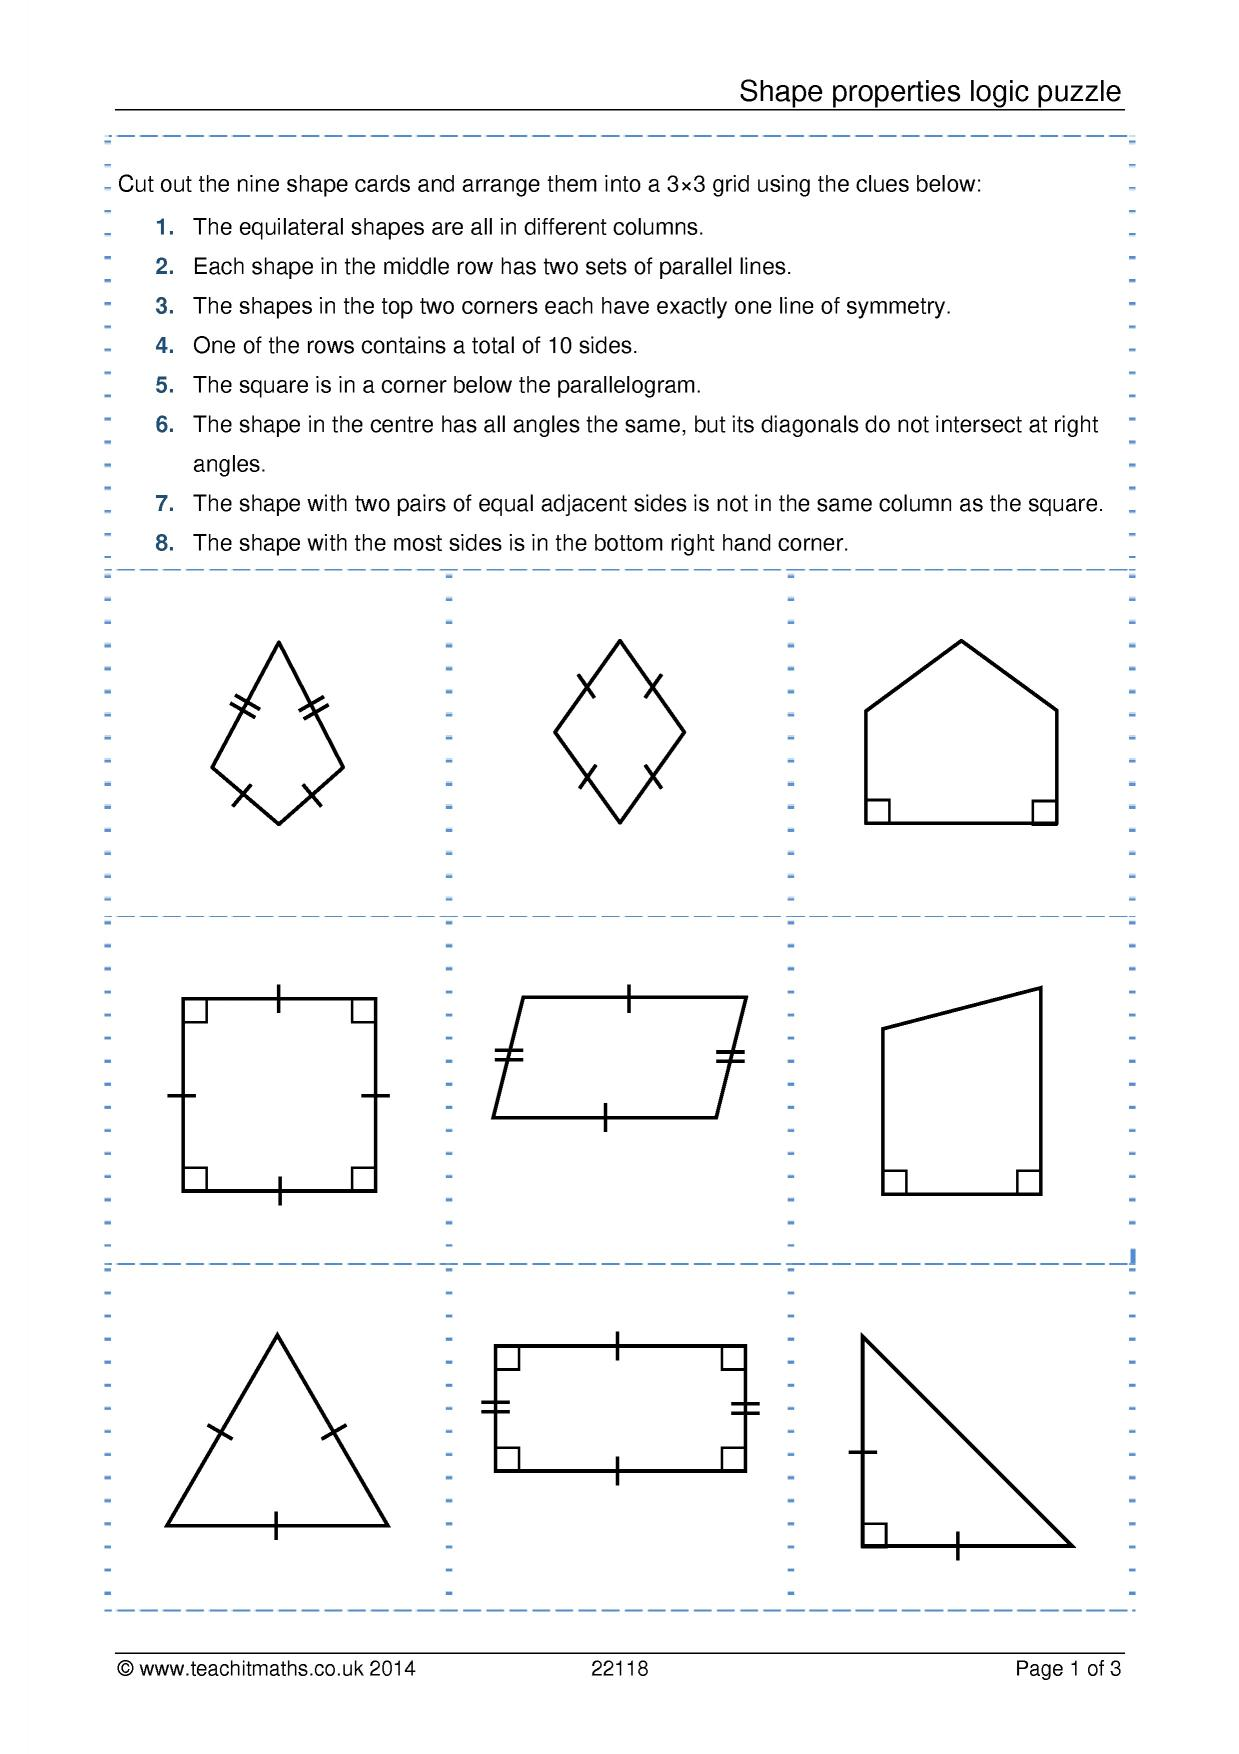 worksheet Properties Of Special Quadrilaterals Worksheet shape properties logic puzzle geometry and measure 2d shapes resource thumbnail